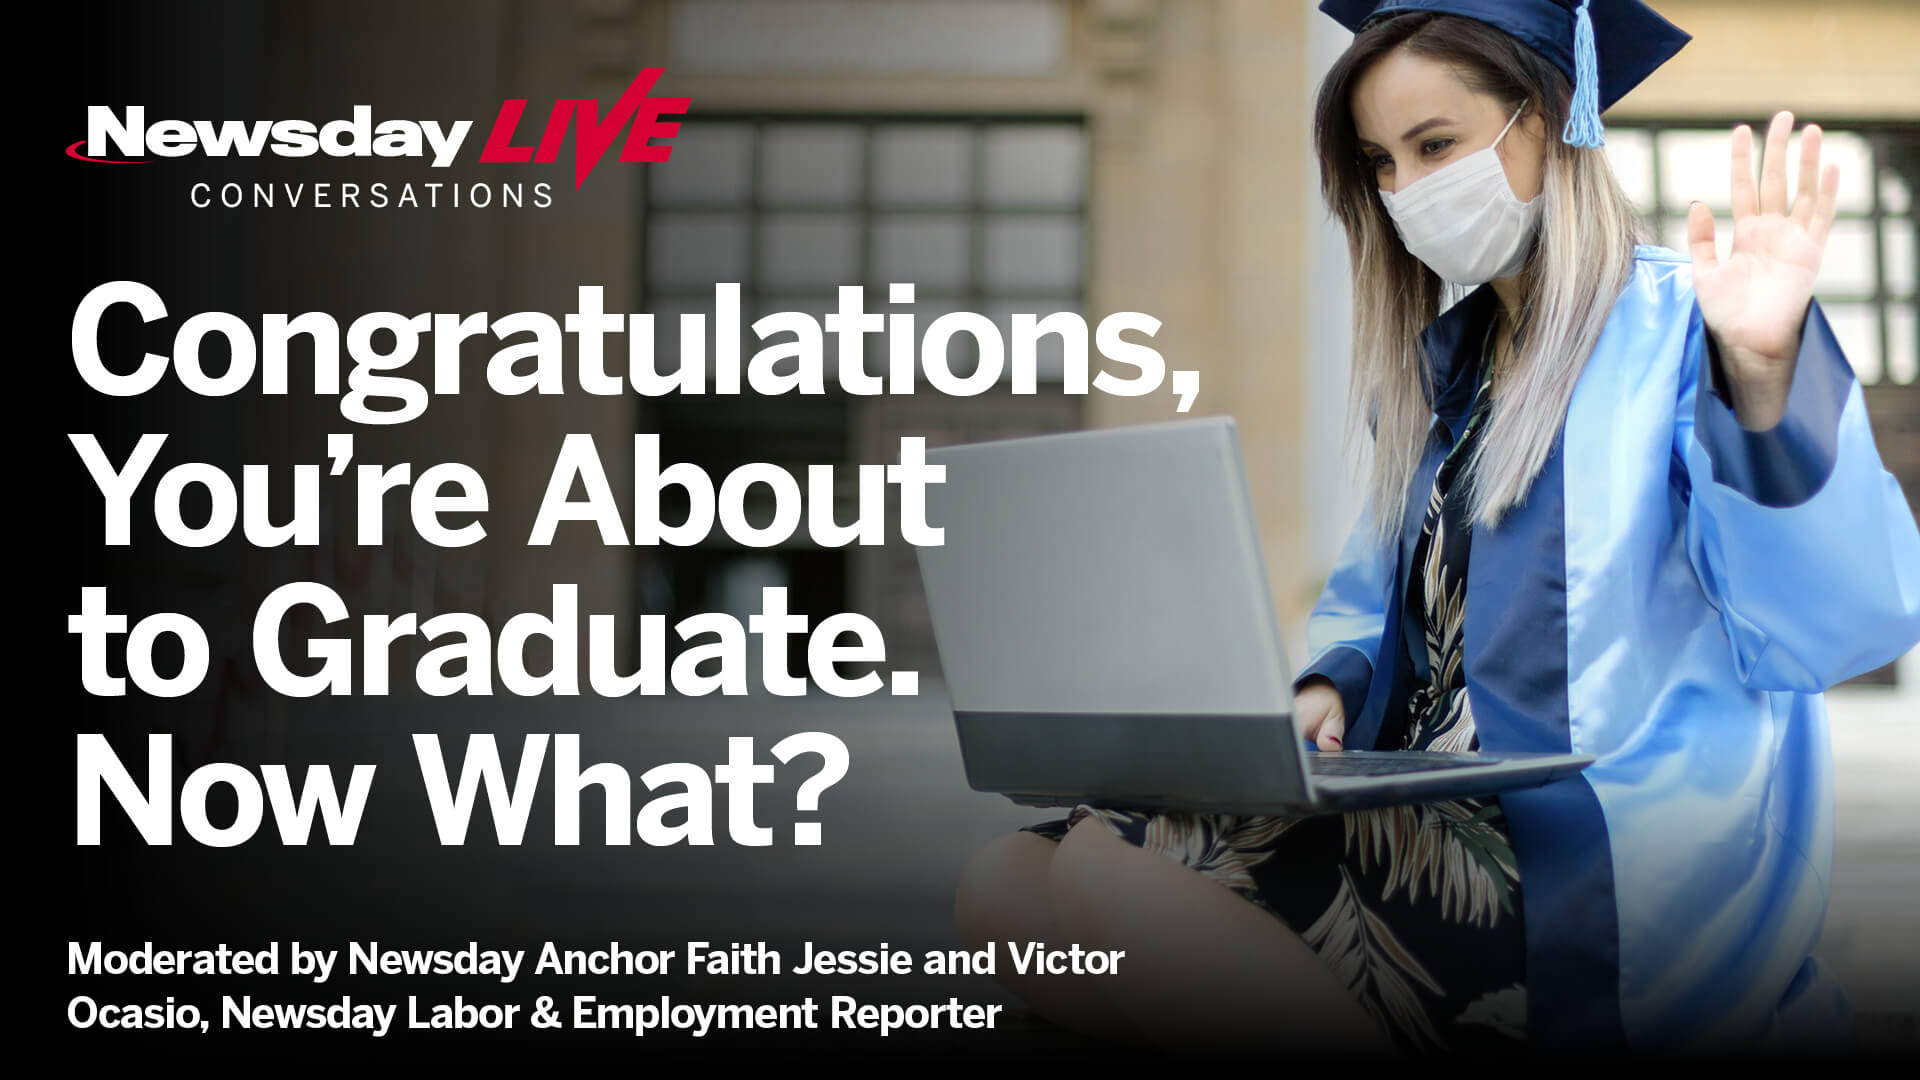 Congratulations, You're About to Graduate. Now What?